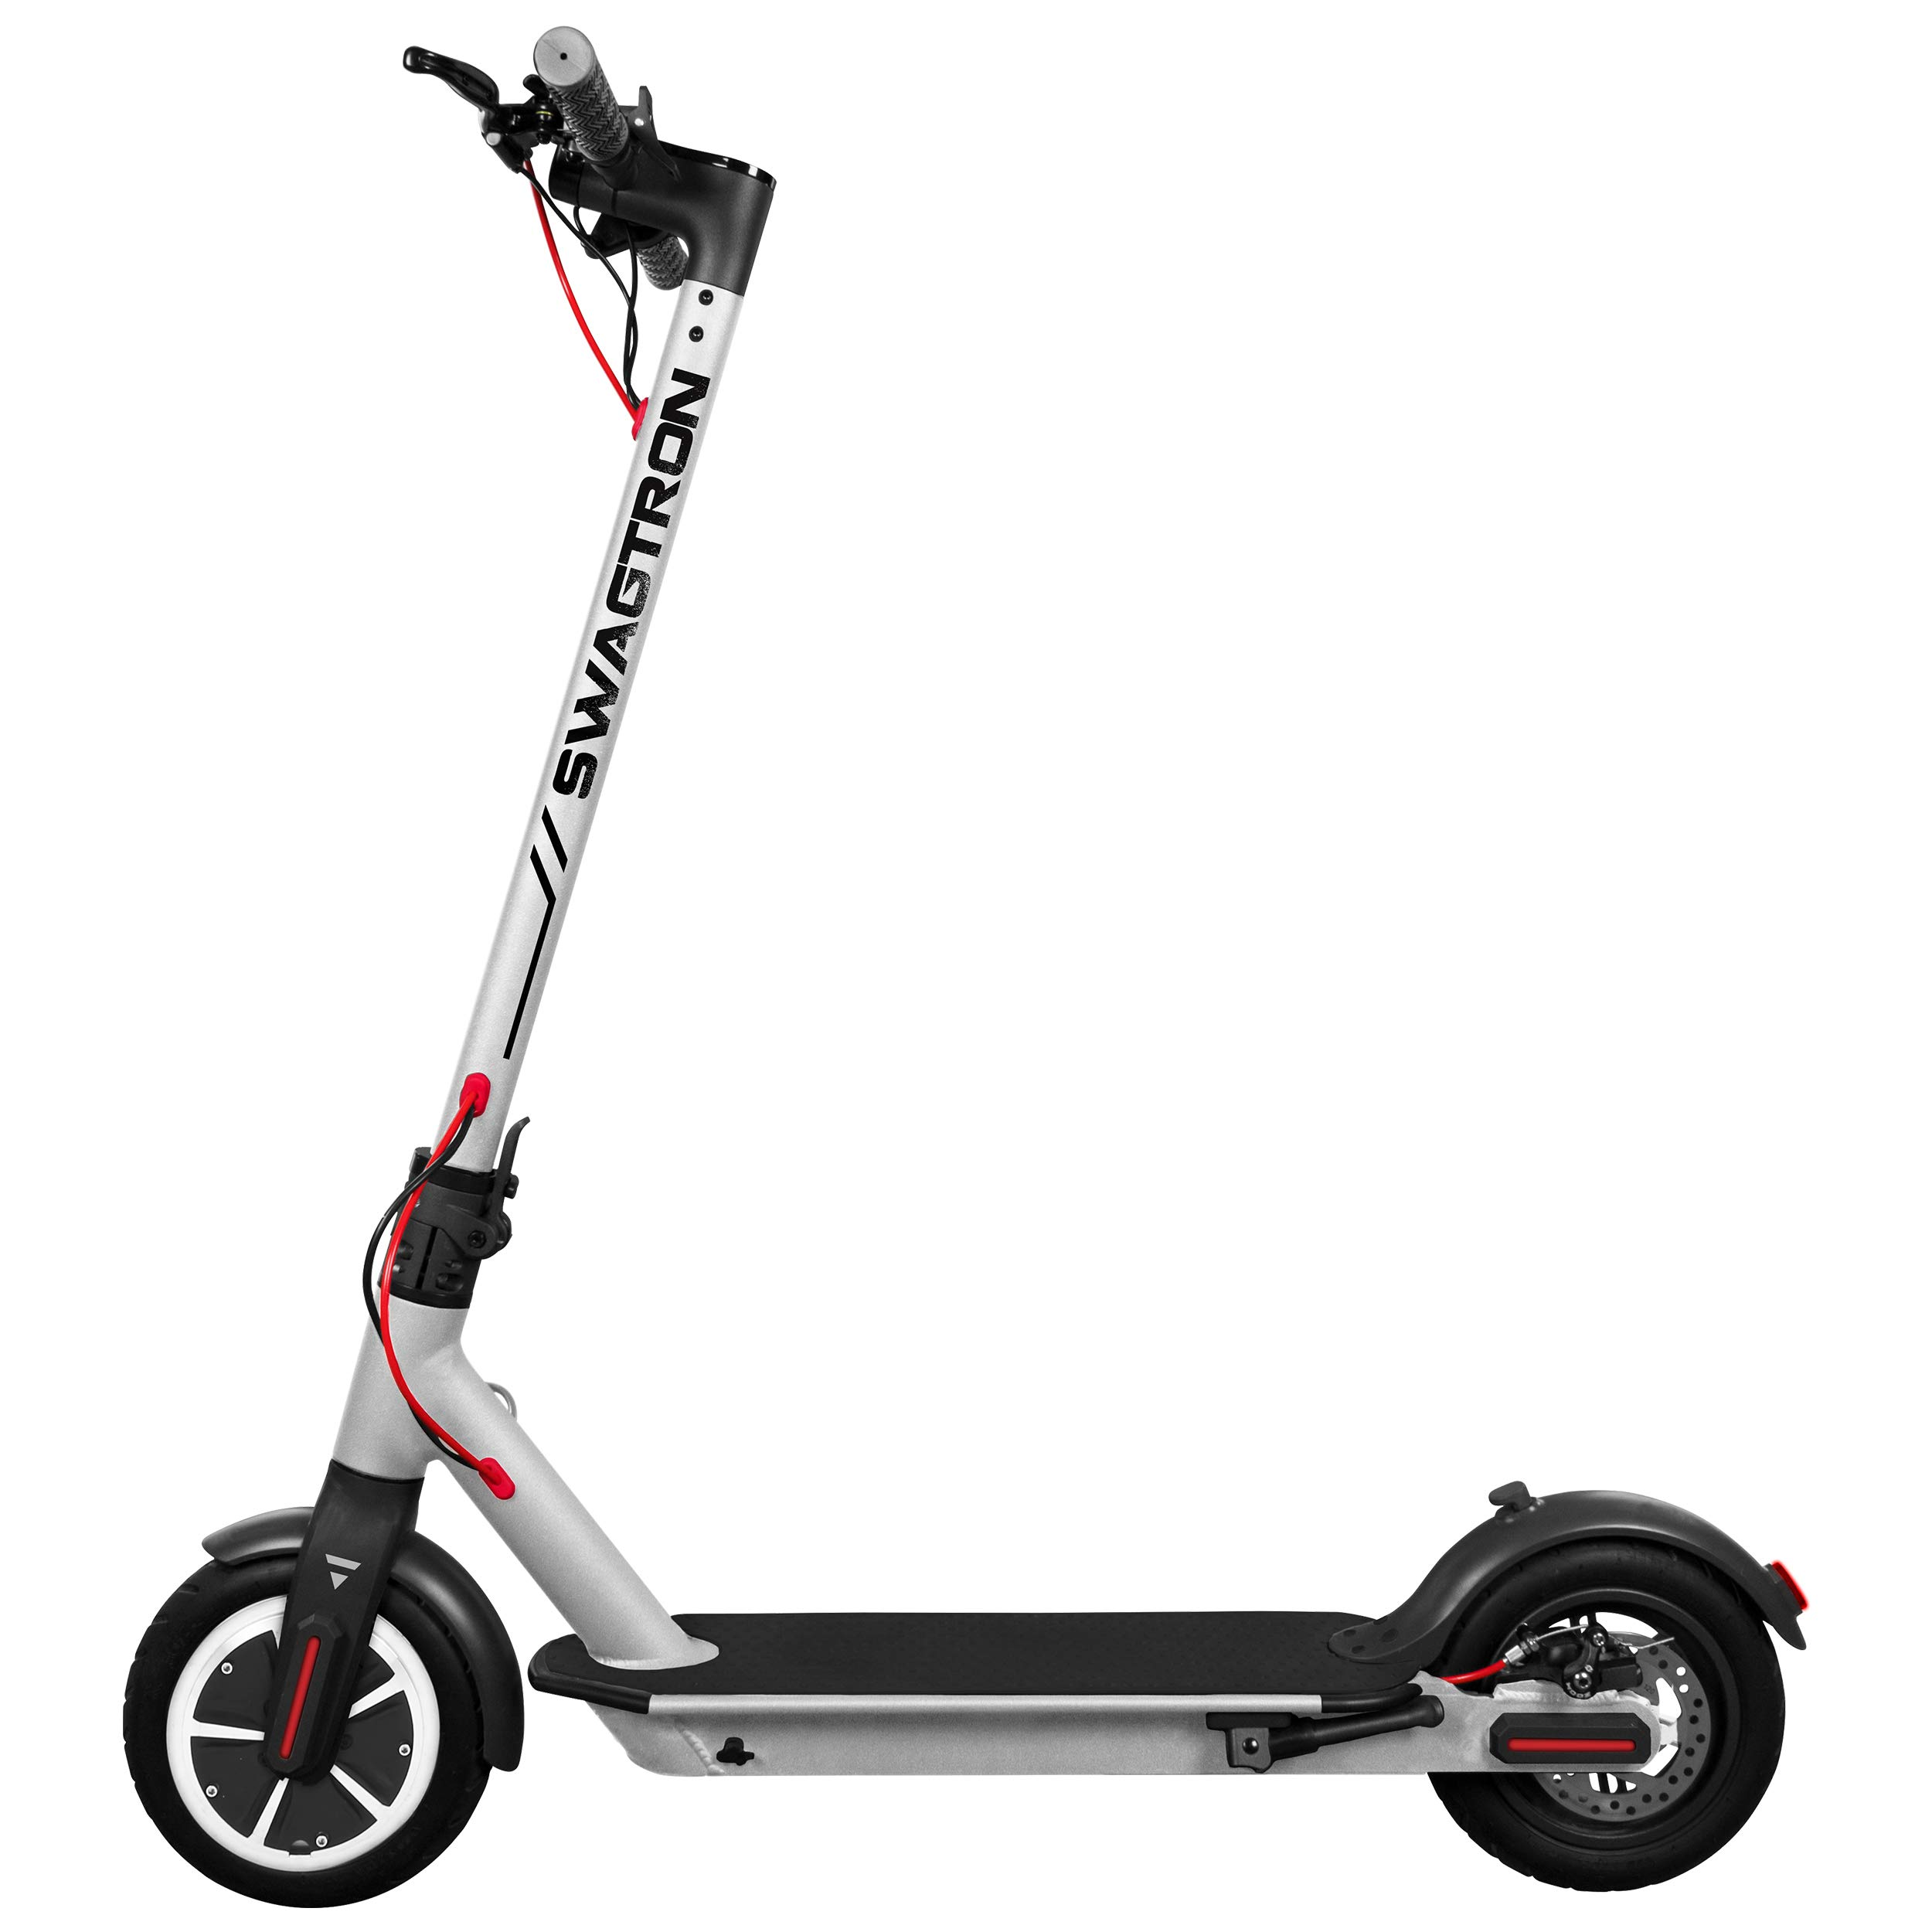 Swagtron High Speed Electric Scooter with 8.5'' Cushioned Tires, Cruise Control and 1-Step Portable Folding - Swagger 5